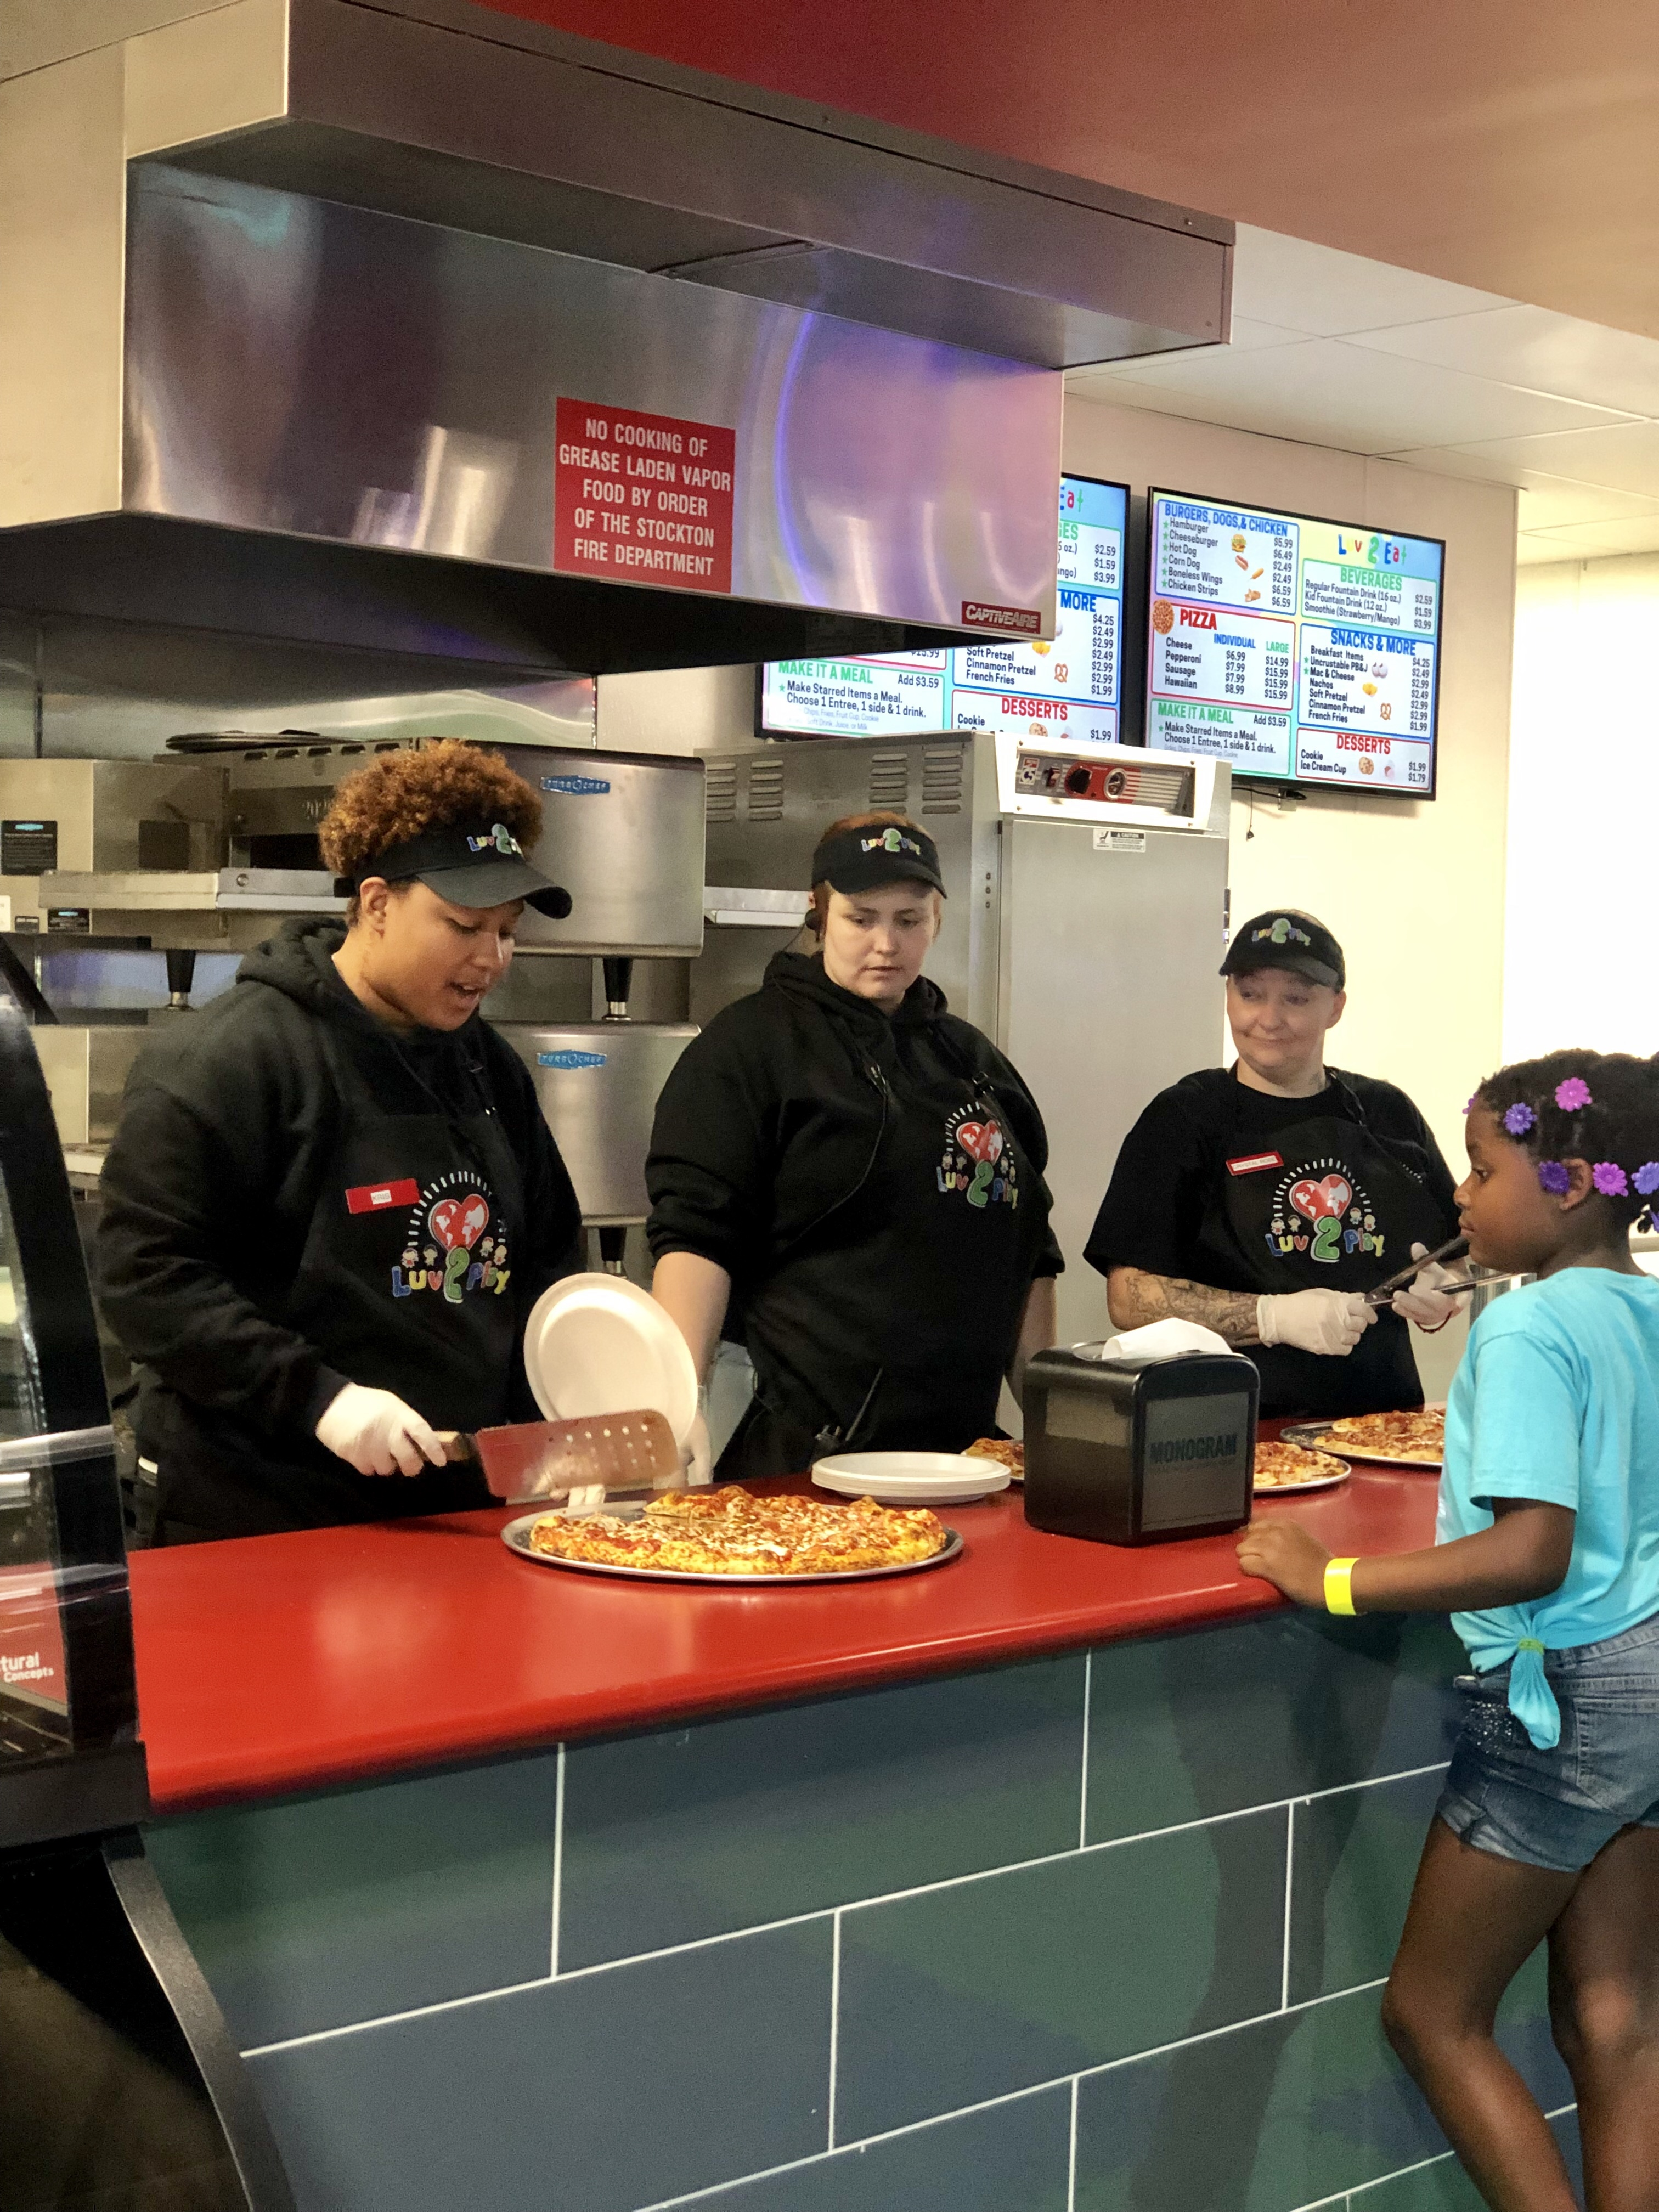 women serving pizza to a young girl